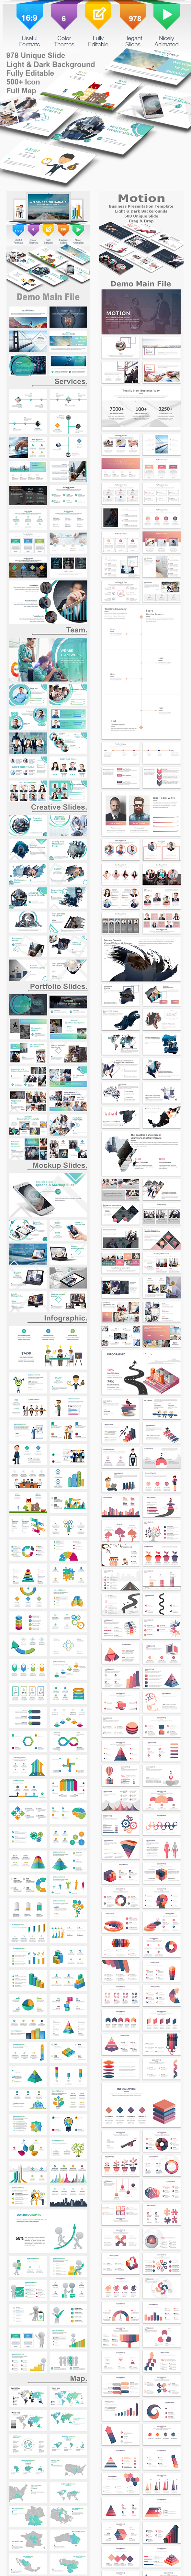 Nimm 3 - 4 in 1 Bundle Business Google Slide Template - Google Slides Presentation Templates